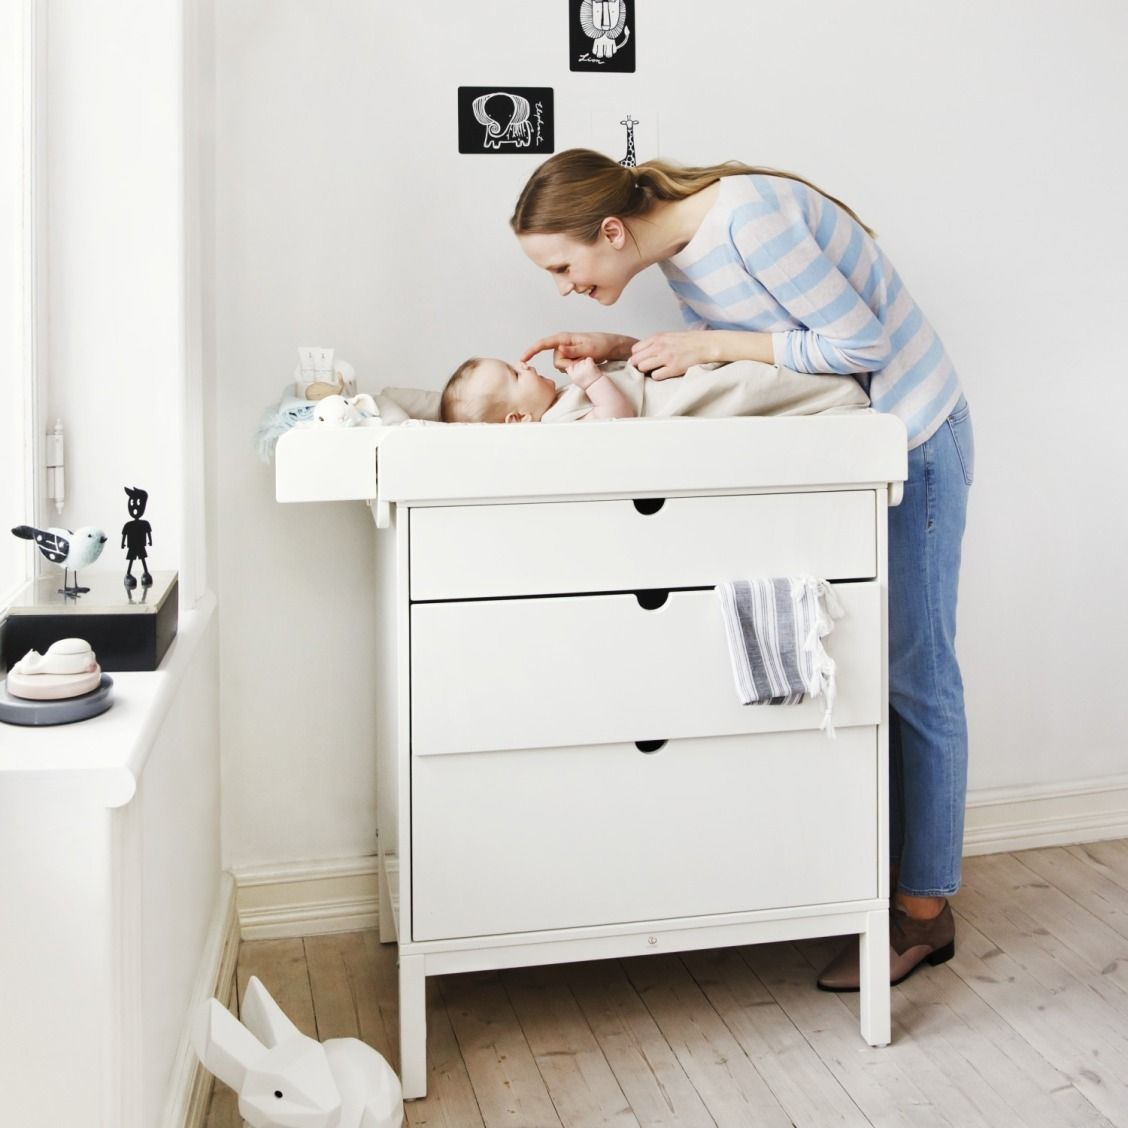 Baby cribs keep your baby close - Keep Baby Close During Changing Time With The Stokke Home Dresser The Space Under The Dresser Allows You To Stand Closer To Your Baby And Allows For Both